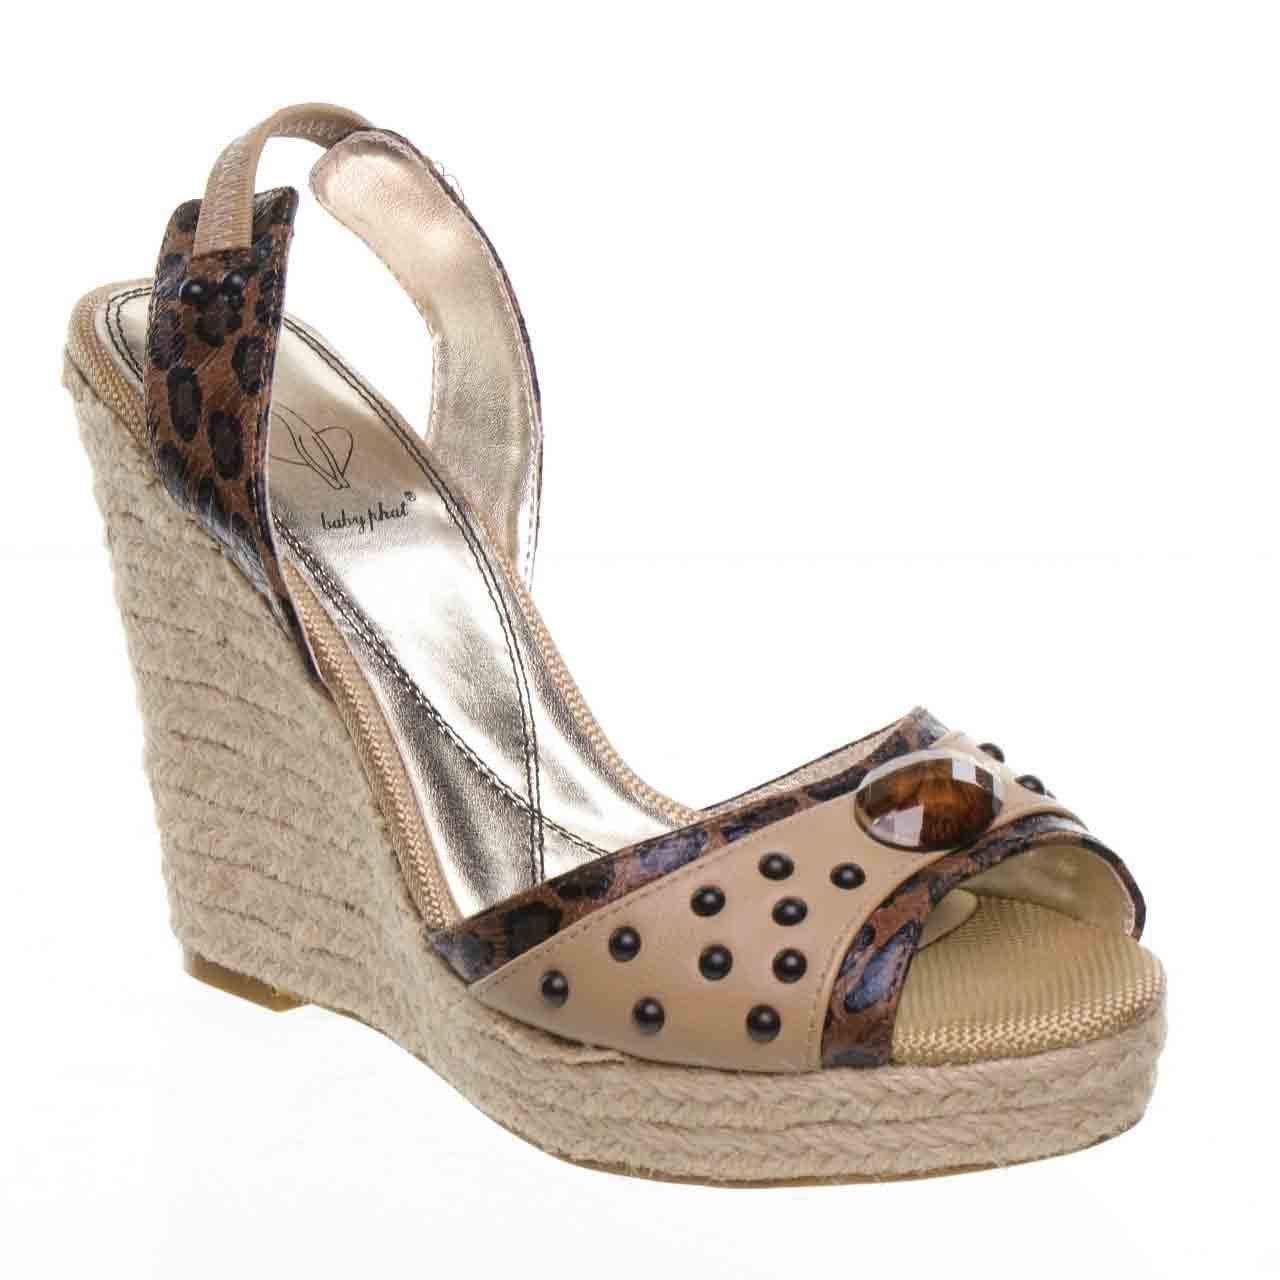 Primary image for Baby Phat Addison Womens Tan High Heels Platform Sandal Wedge Shoes BD112371-7.5